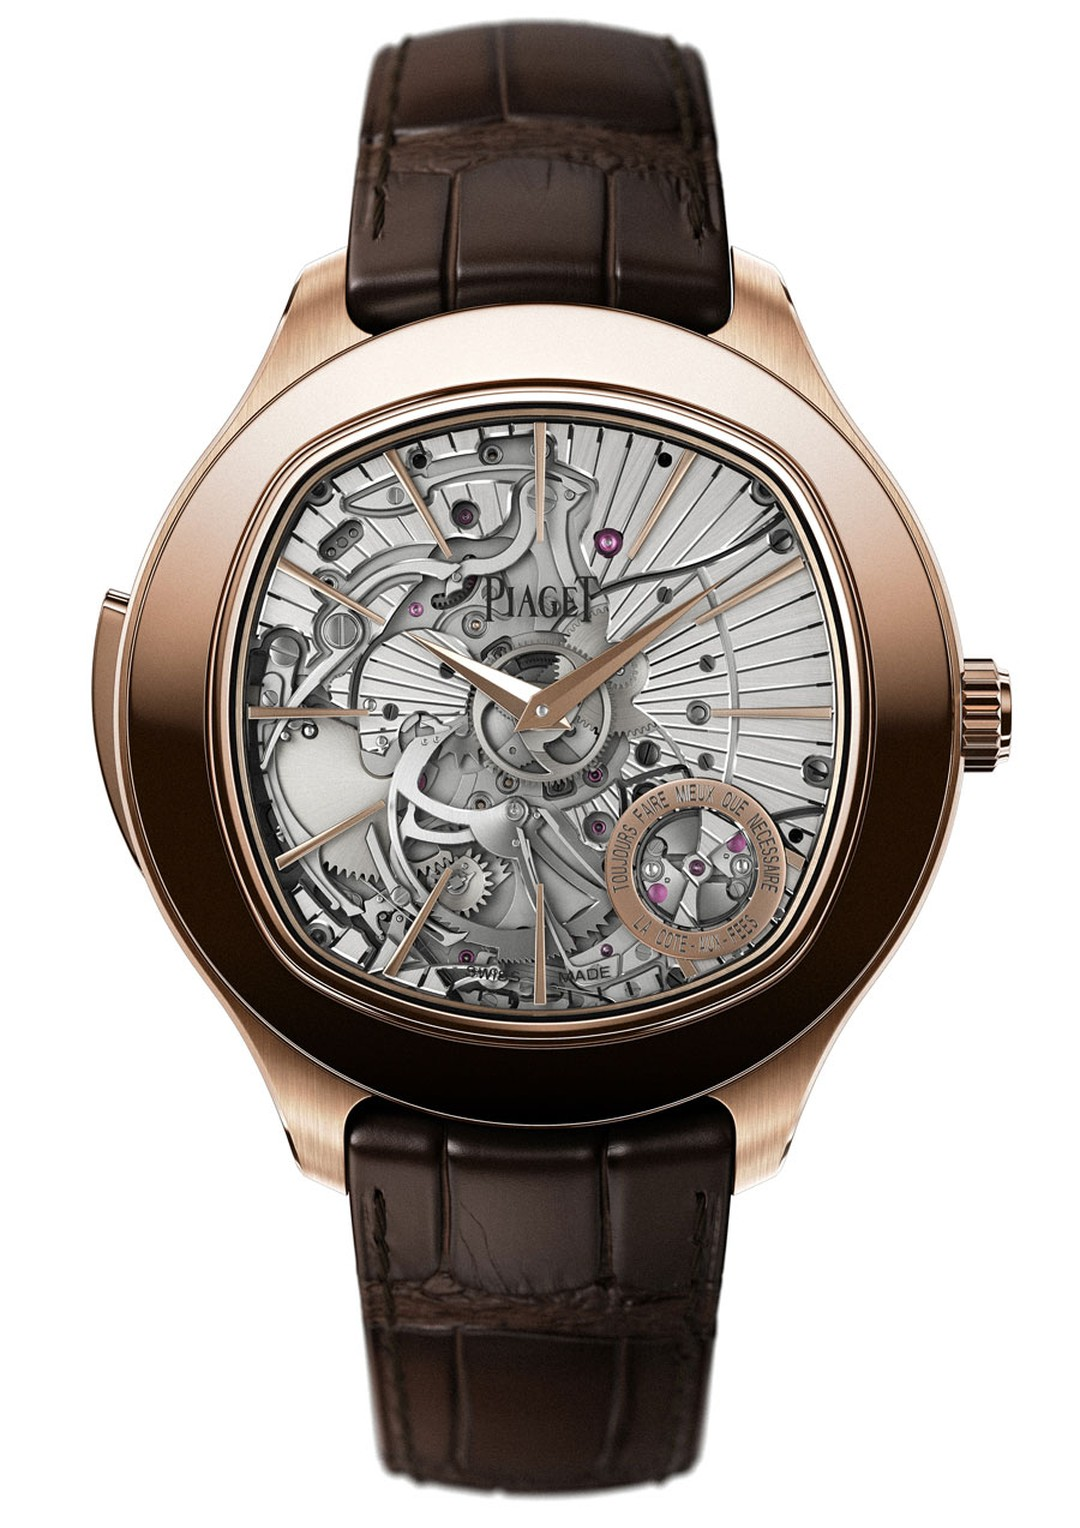 Piaget-Minute-Repeater-2